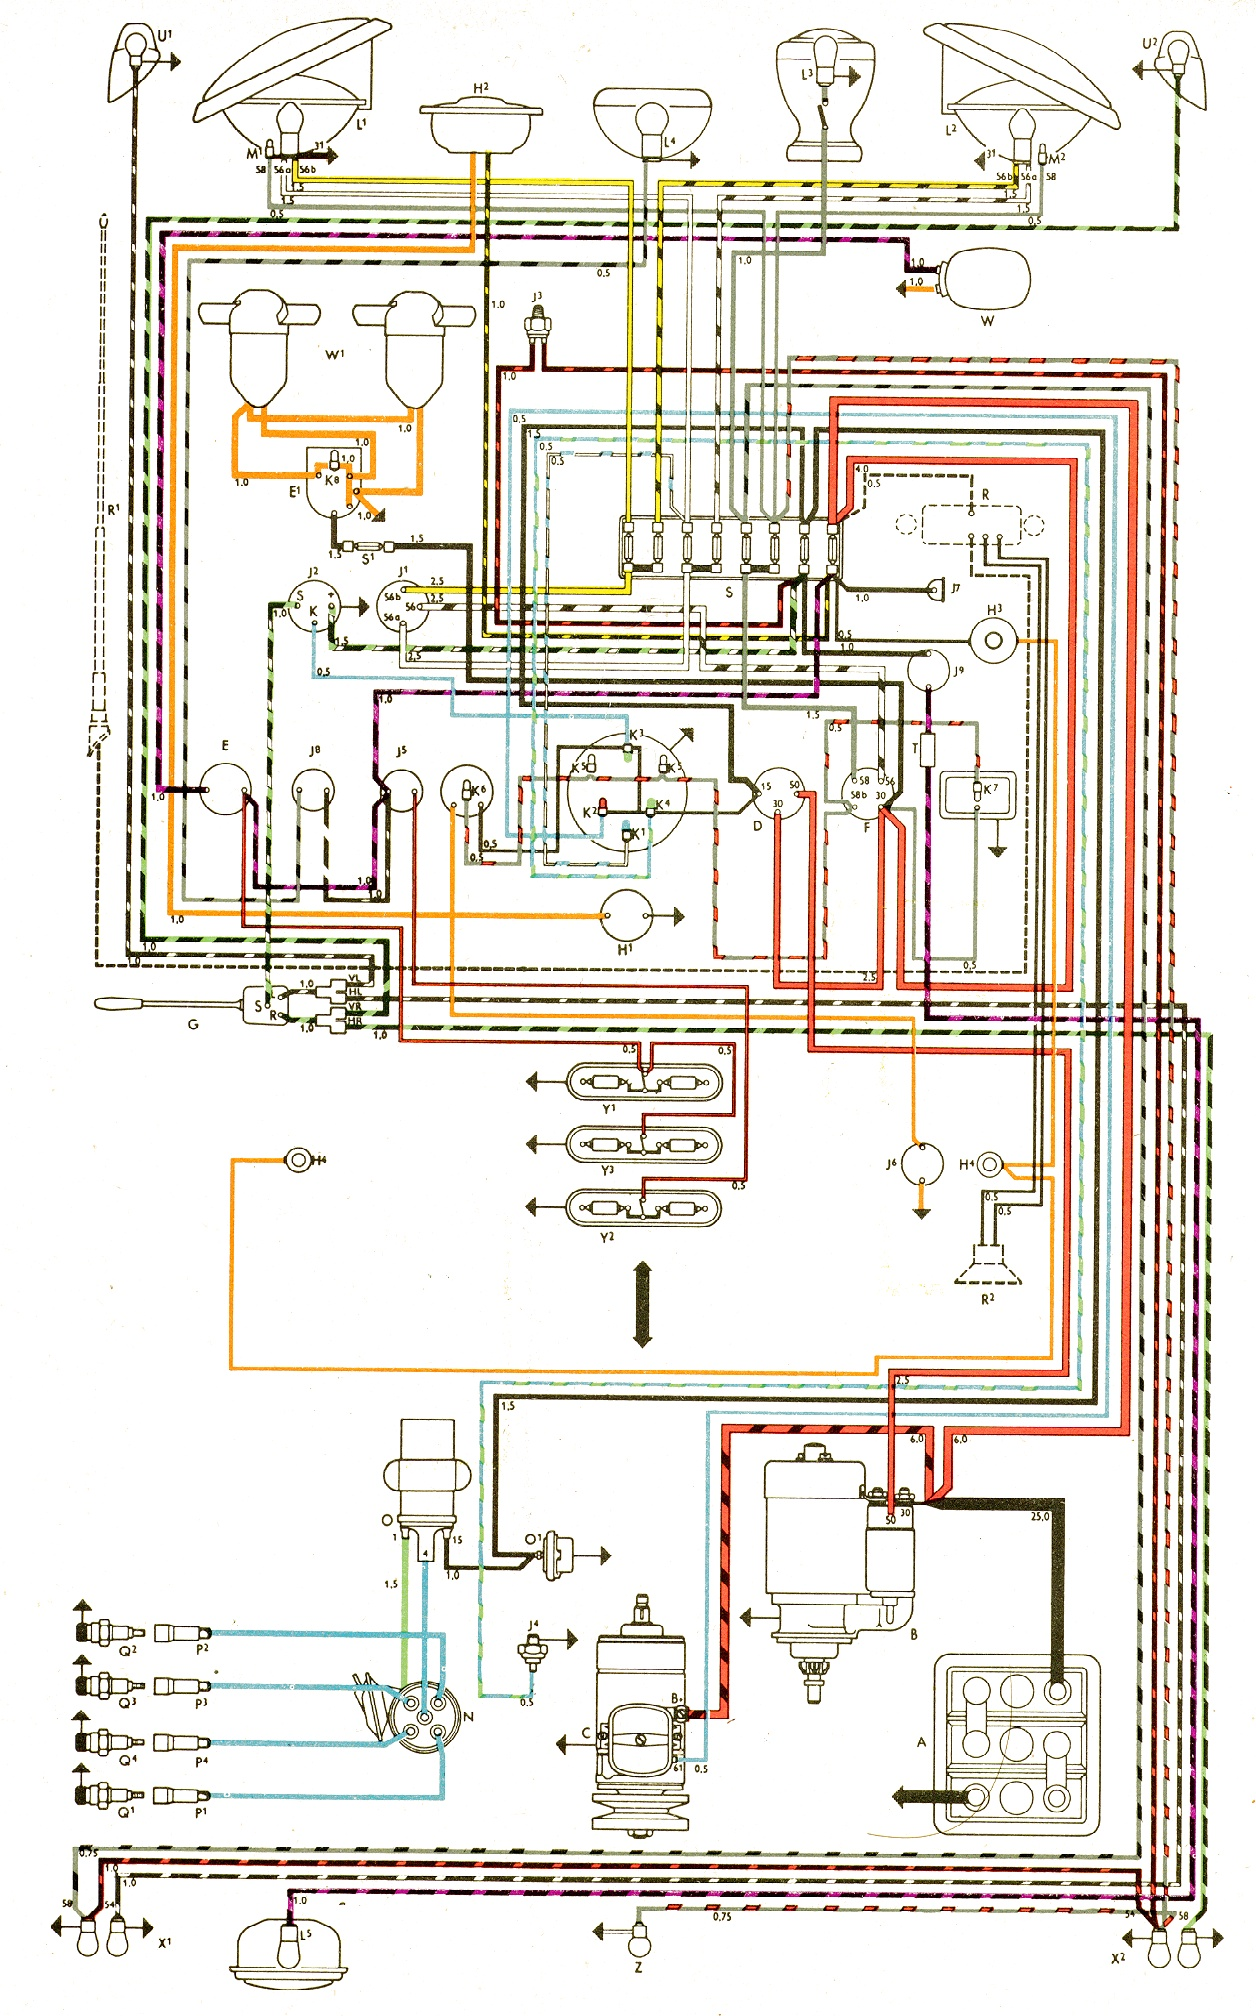 2001 Vw Beetle Engine Wiring Diagram Reveolution Of 72 Volkswagen U2022 Rh Jivehype Co 70 1973 Relay